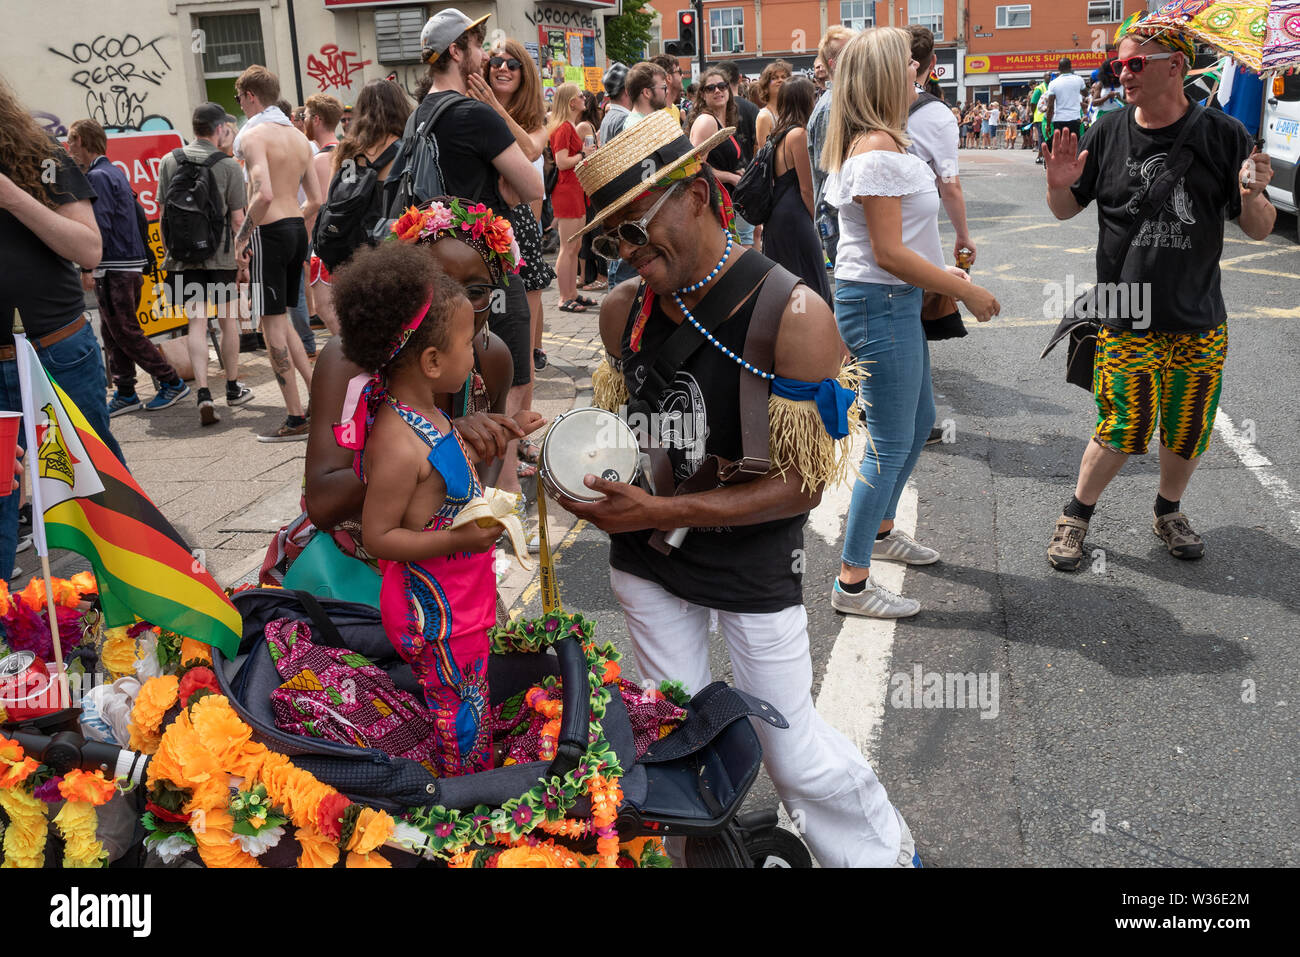 St Pauls, Bristol, UK. July 6th 2019. The 51st St Pauls Carnival Procession wound its way through Bristols St Pauls on a hot and sunny Saturday afternoon. The carnival attracted around 100,000 people. Organised by the St Pauls Carnival Community Interest Company. Pictured, young child encouraged by mother to tap drum belonging to procession participant. Credit: Stephen Bell/Alamy - Stock Image